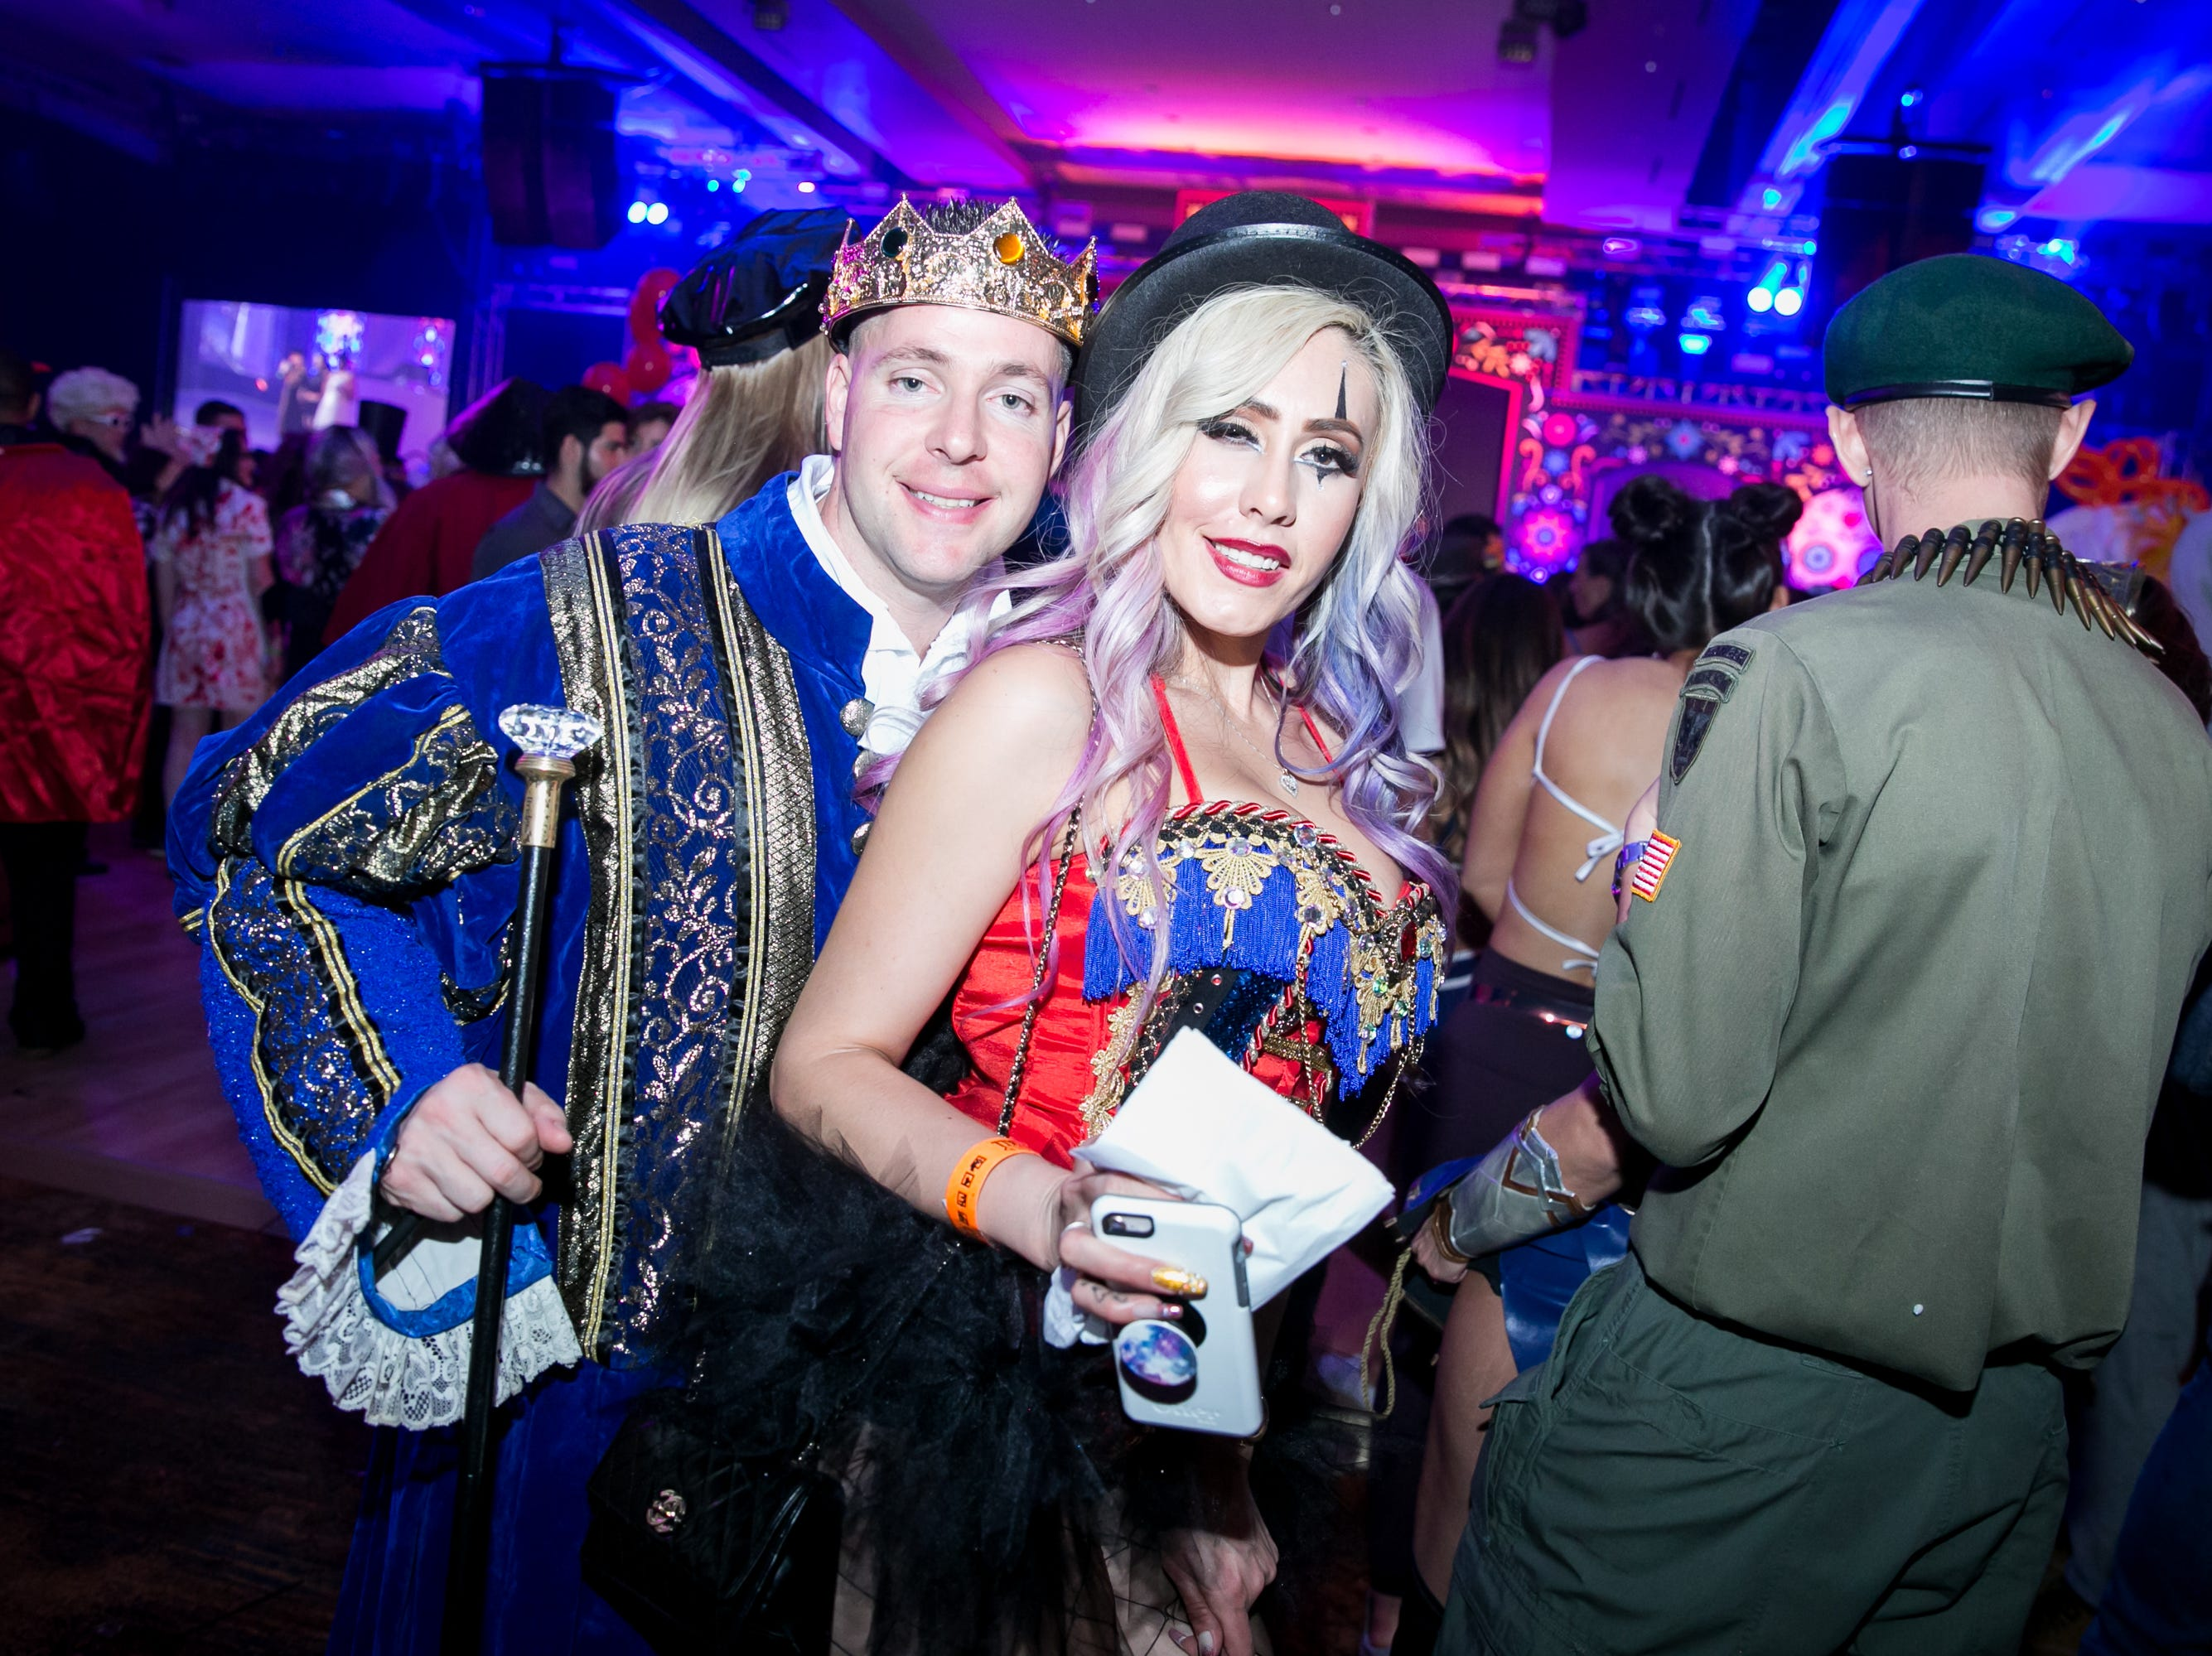 Great times were had during Wicked Ball at Talking Stick Resort on Saturday, October 27, 2018.